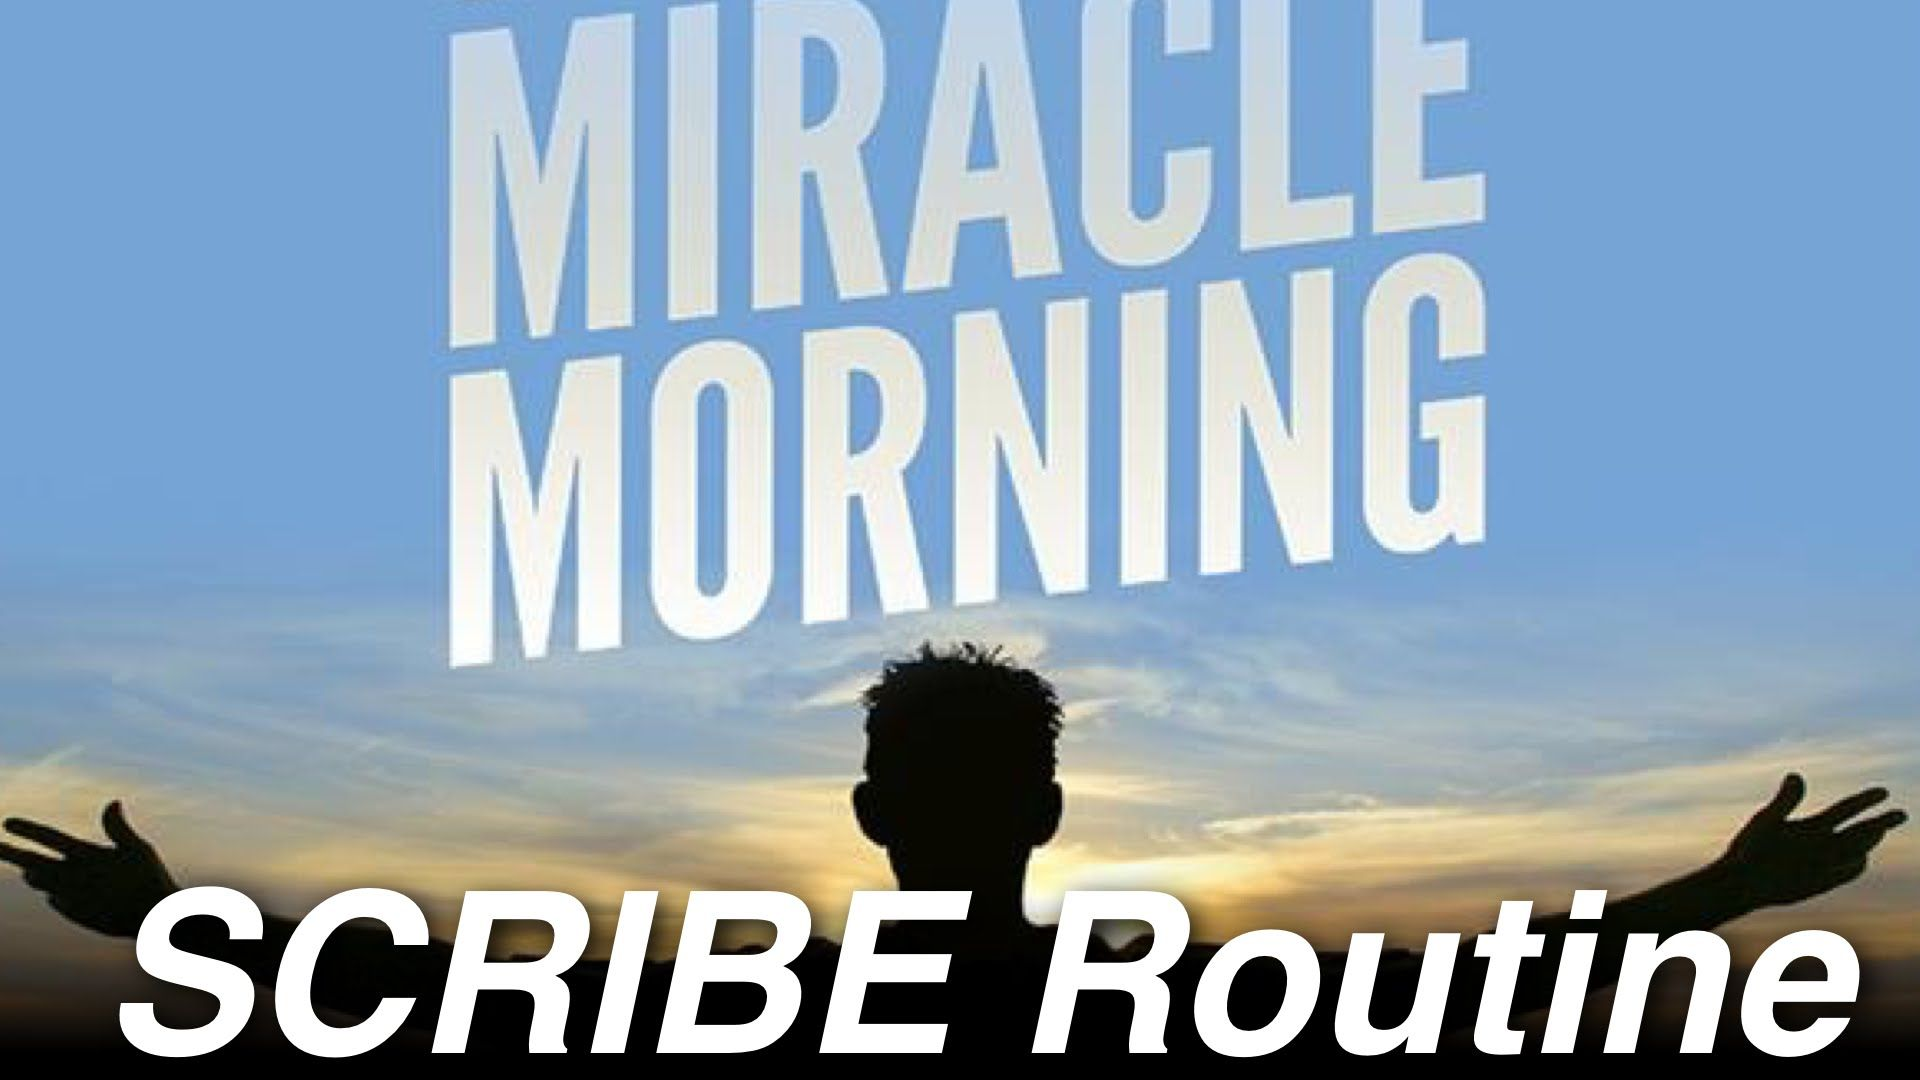 """http://coachestrainingblog.com/becomeacoach/miracle-morning-mastery-event/17795/ On June 21-23, 2016, the Miracle Morning Mastery Event  will be held in Bloomington, IL at the Hilton Chicago/Indian Lakes Resort. Presented by Hal Elrod International, this is the first ever """"Miracle Morning Mastery & Co-Creation"""" experience."""